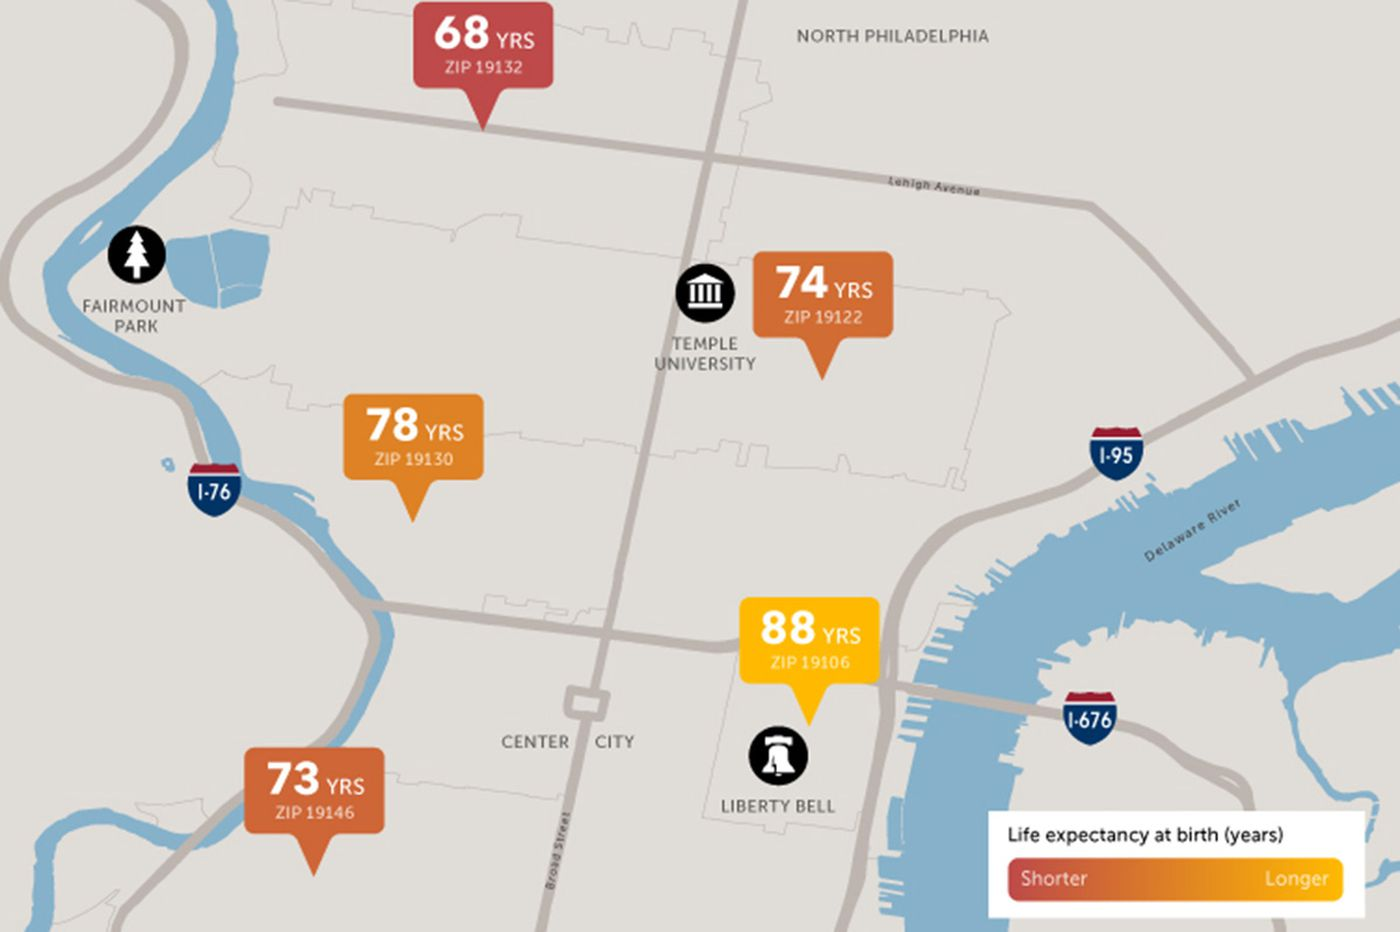 How your neighborhood can impact your life expectancy in Philadelphia